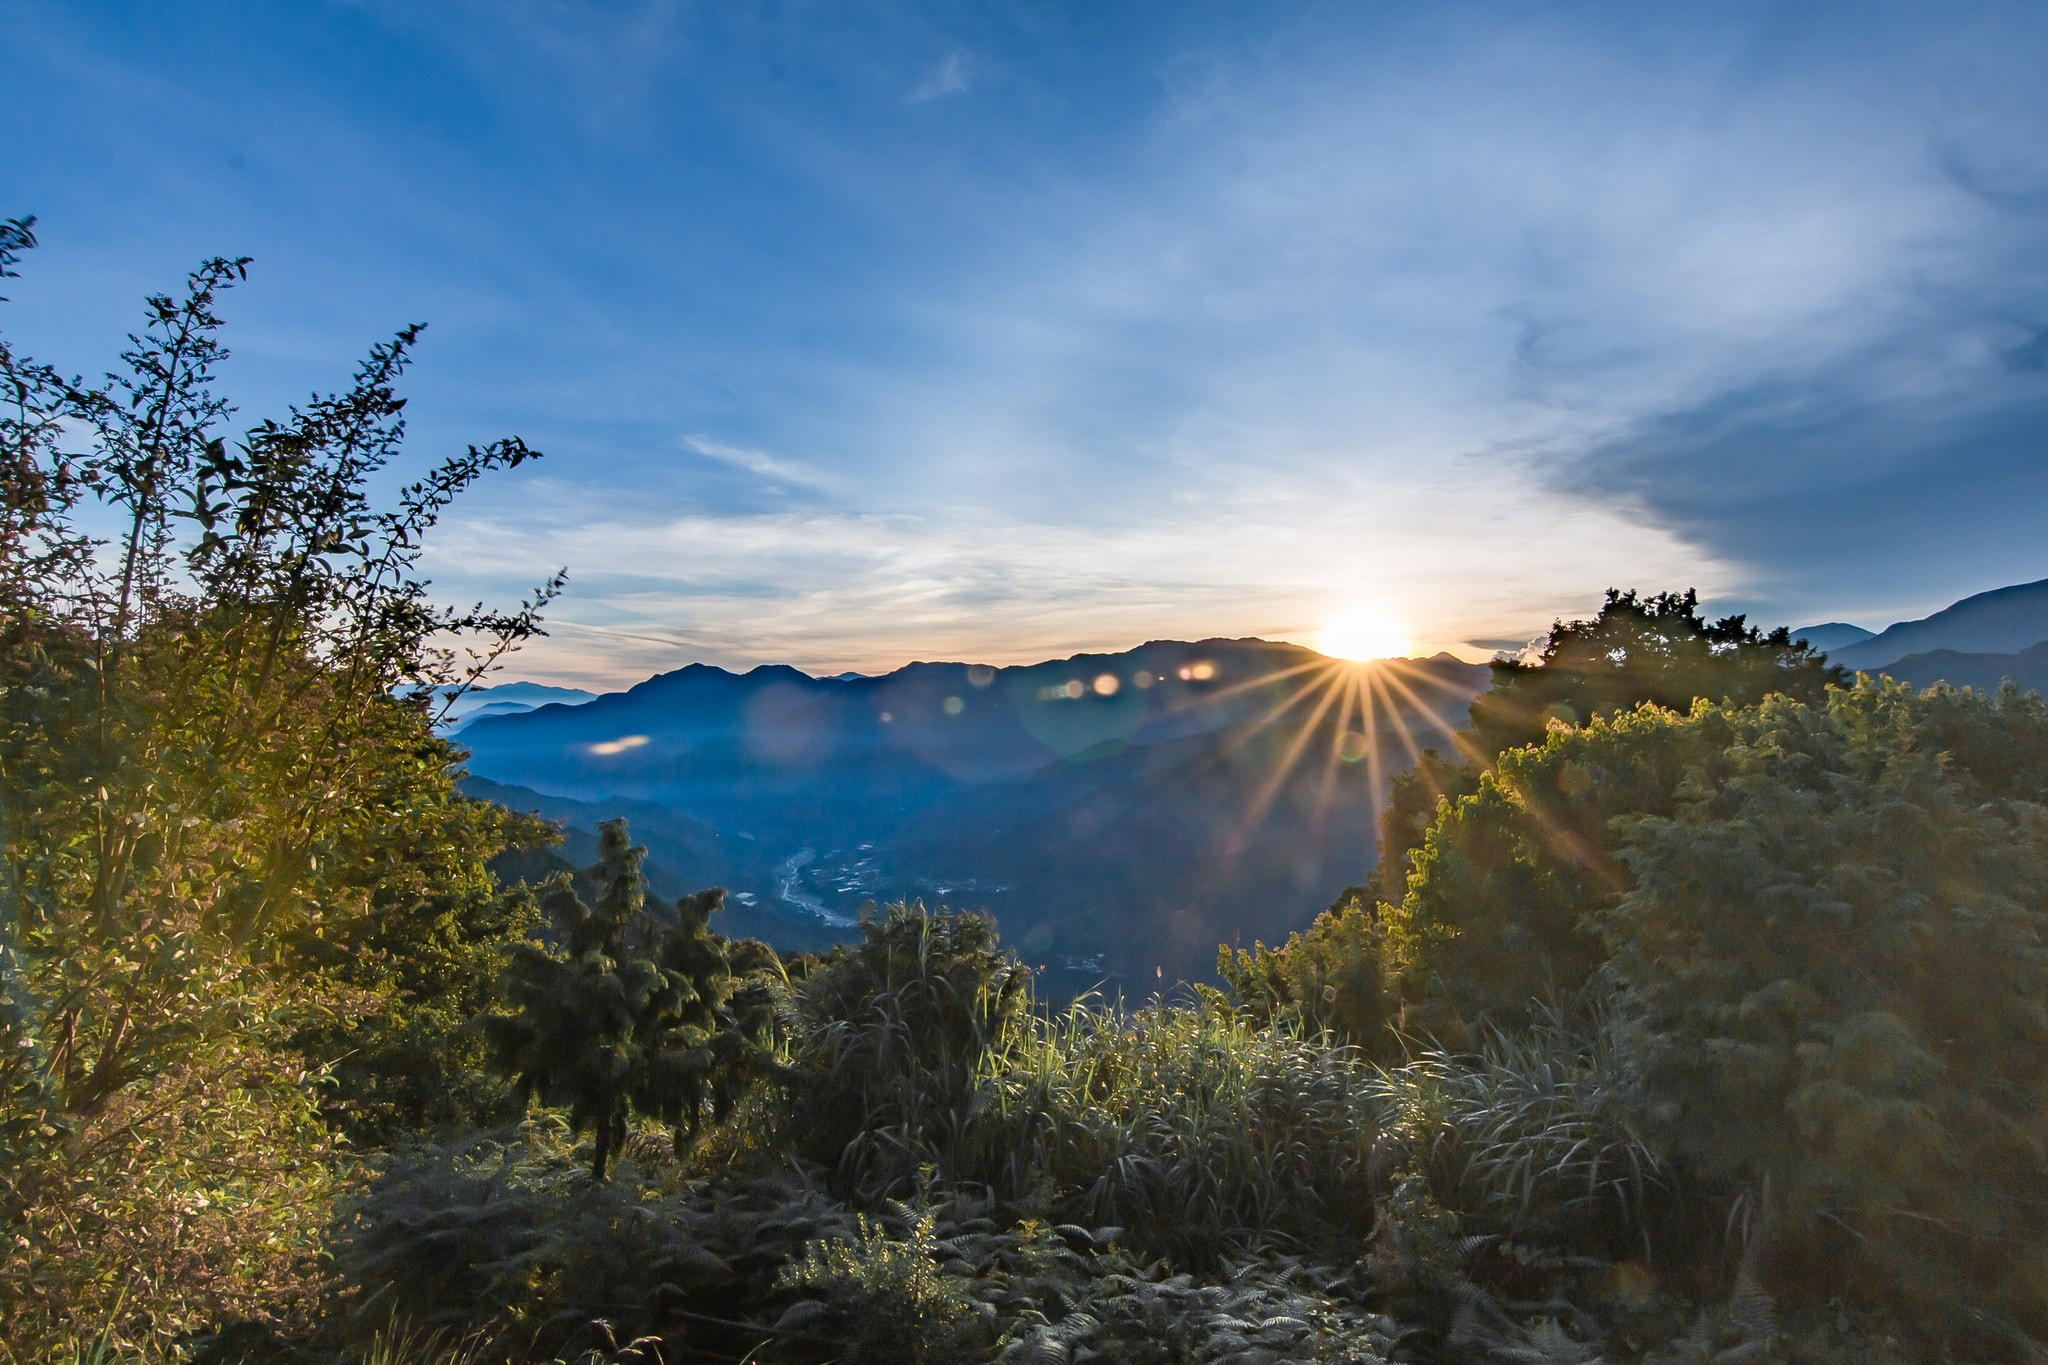 Sunrise over Alishan | © Davin Li / Flickr